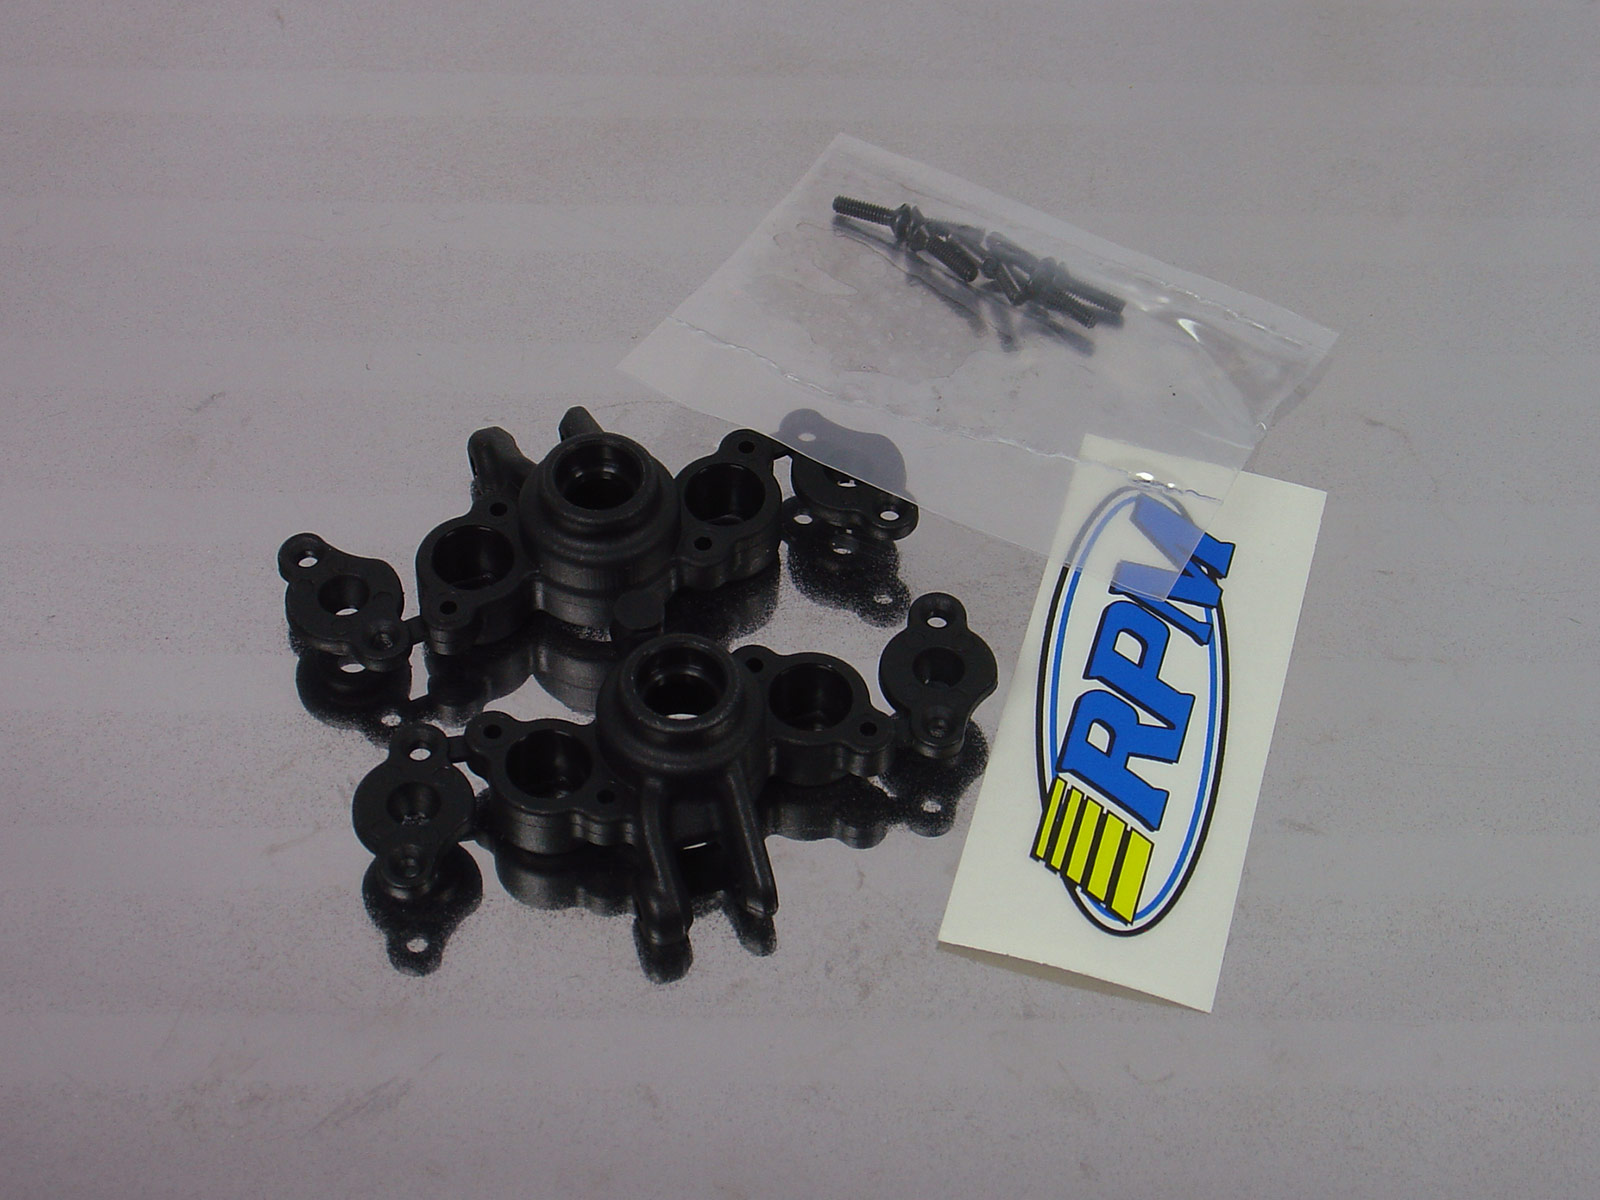 RPM Axle Carriers for Traxxas 1/16th Scale RC Vehicles